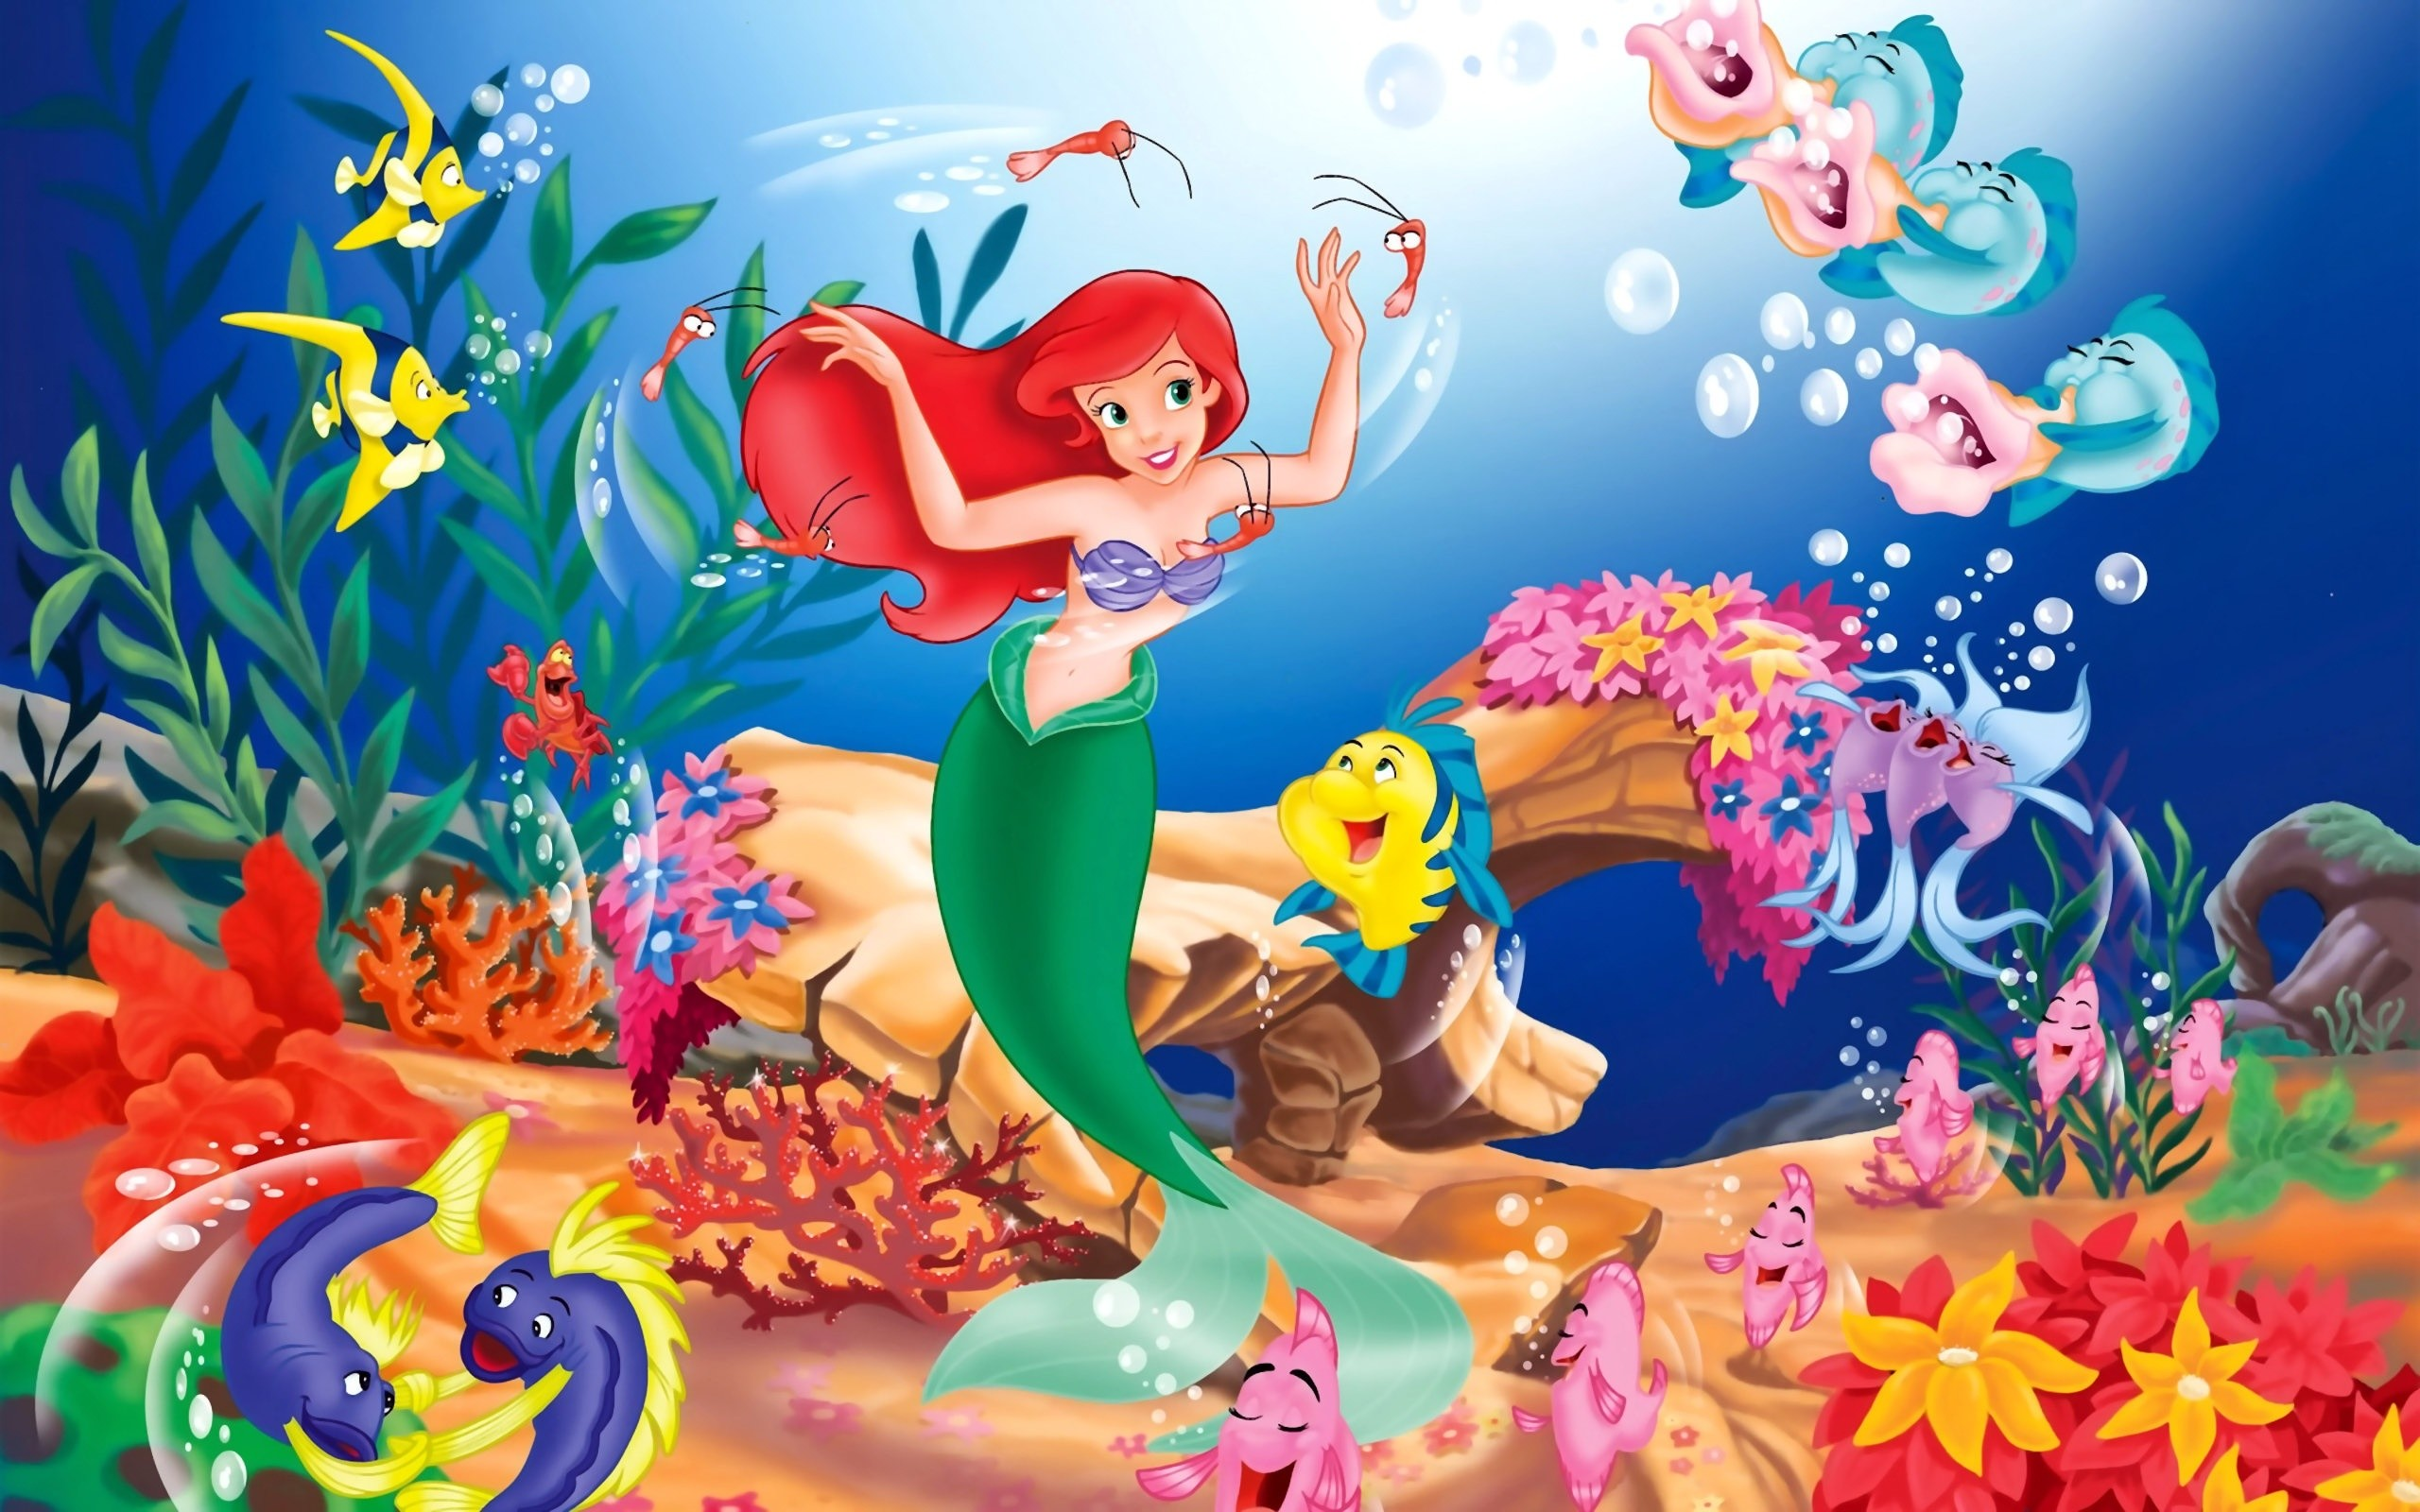 2560x1600 Disney The Little Mermaid Wallpapers | HD Wallpapers